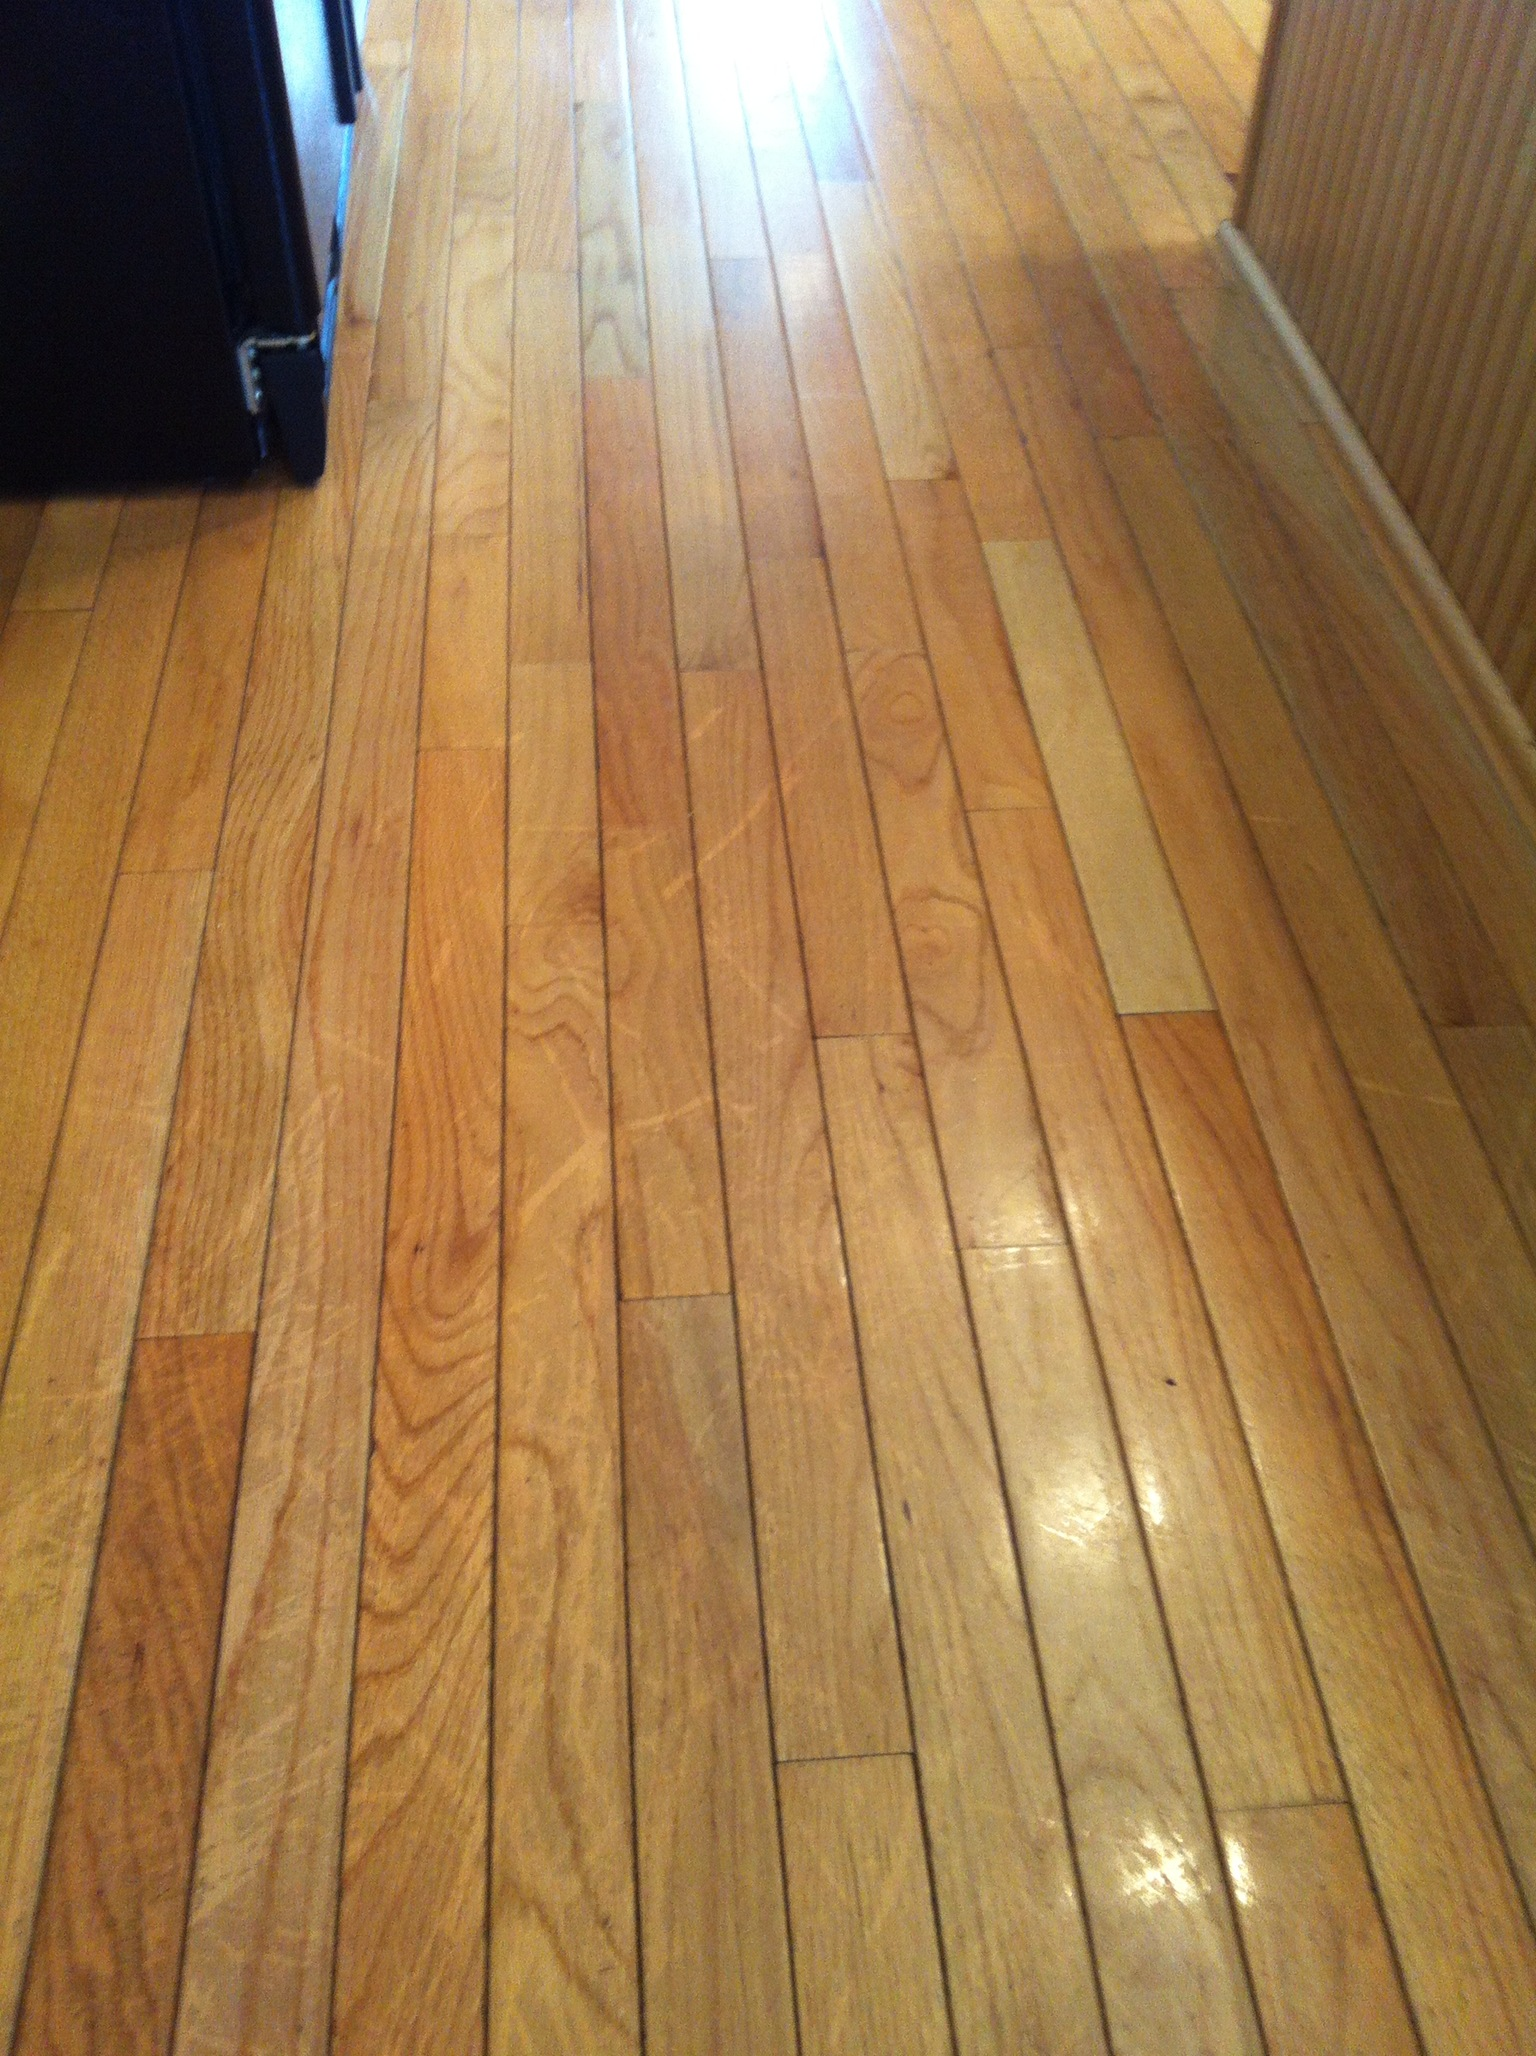 A Case Study Of Hardwood Floor Cleaning Wood Floor Cleaning ASJ - How to remove mop and glo from hardwood floors